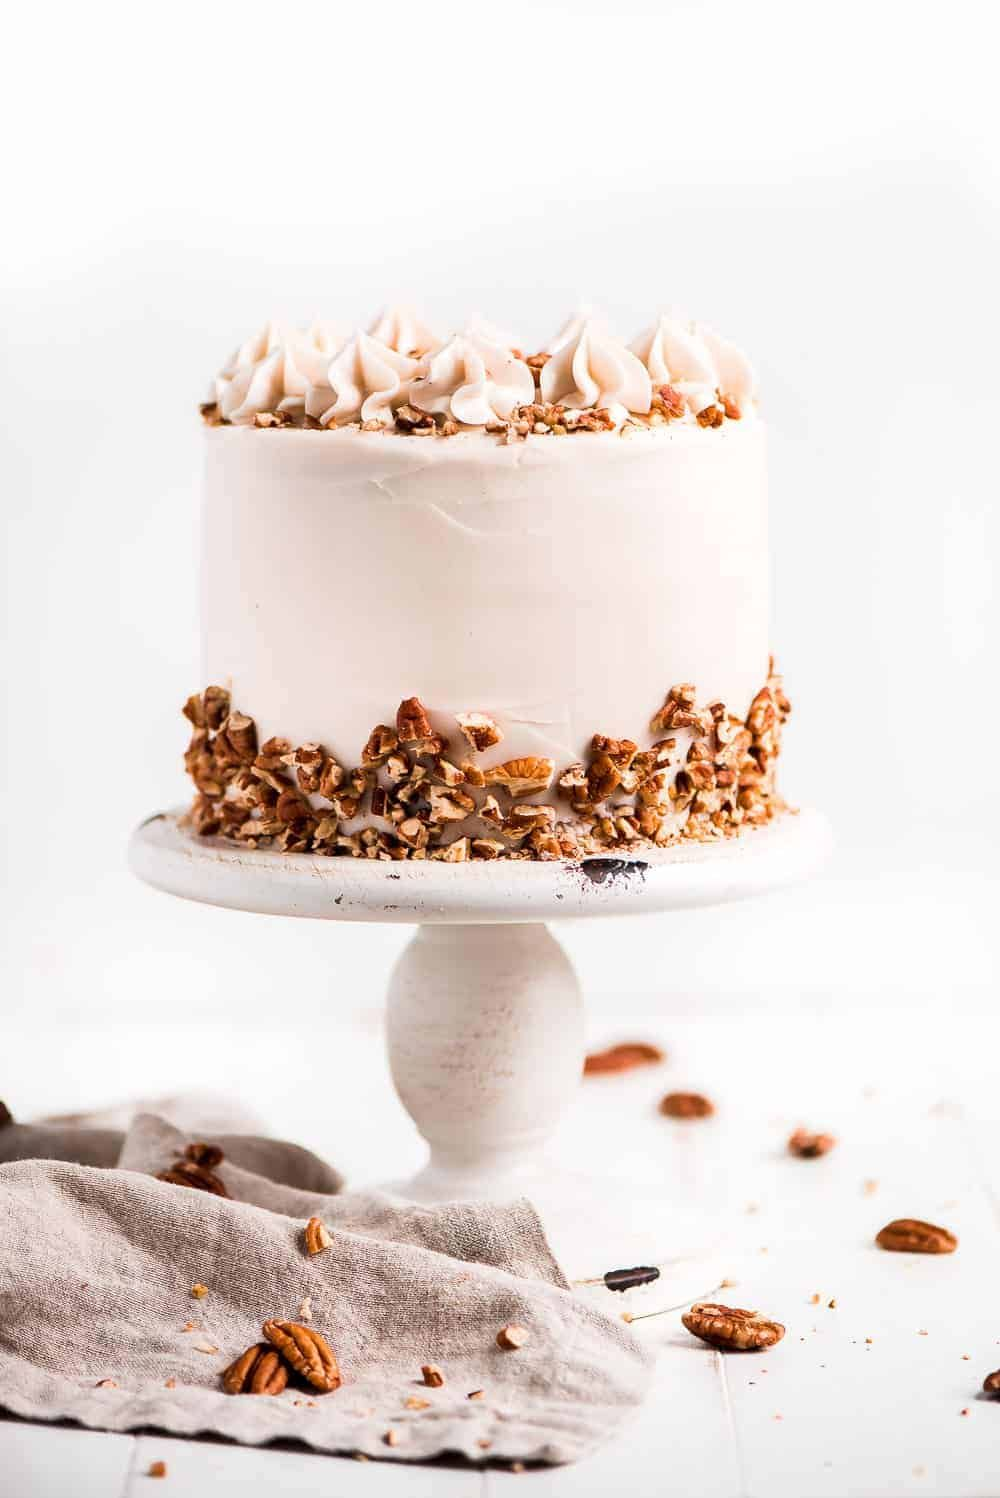 This classic southern Hummingbird Cake has a moist crumb full of bananas, cinnamon, and pineapple, all surrounded in a smooth cream cheese frosting. So easy! Hummingbird Cake